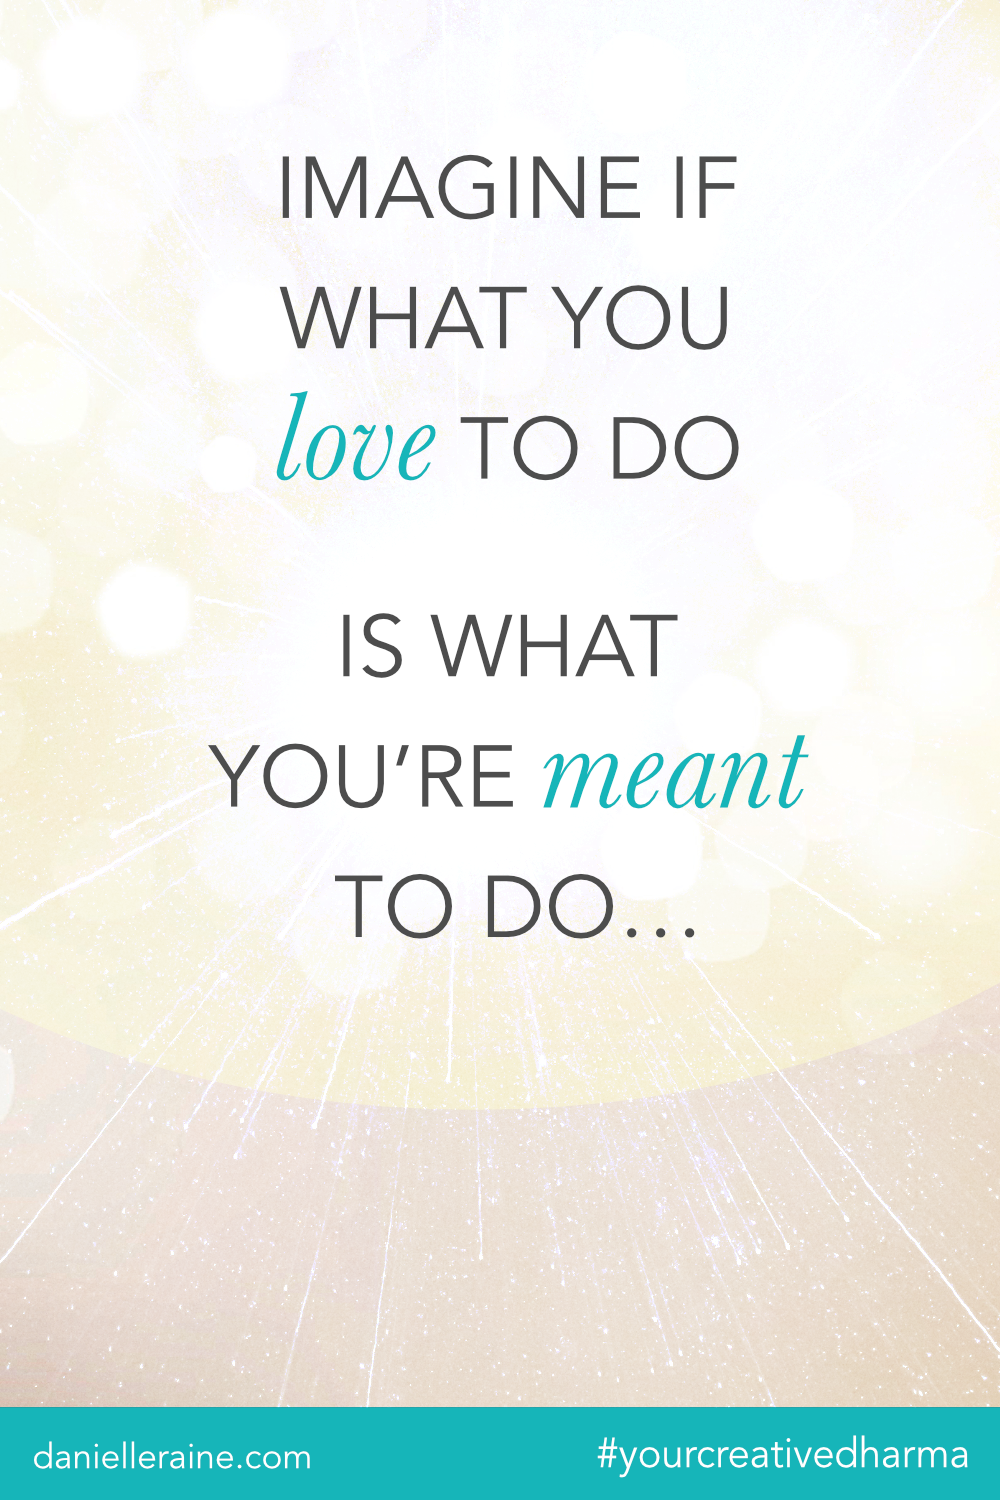 Your Creative Dharma quote what you love to do is what you're meant to do